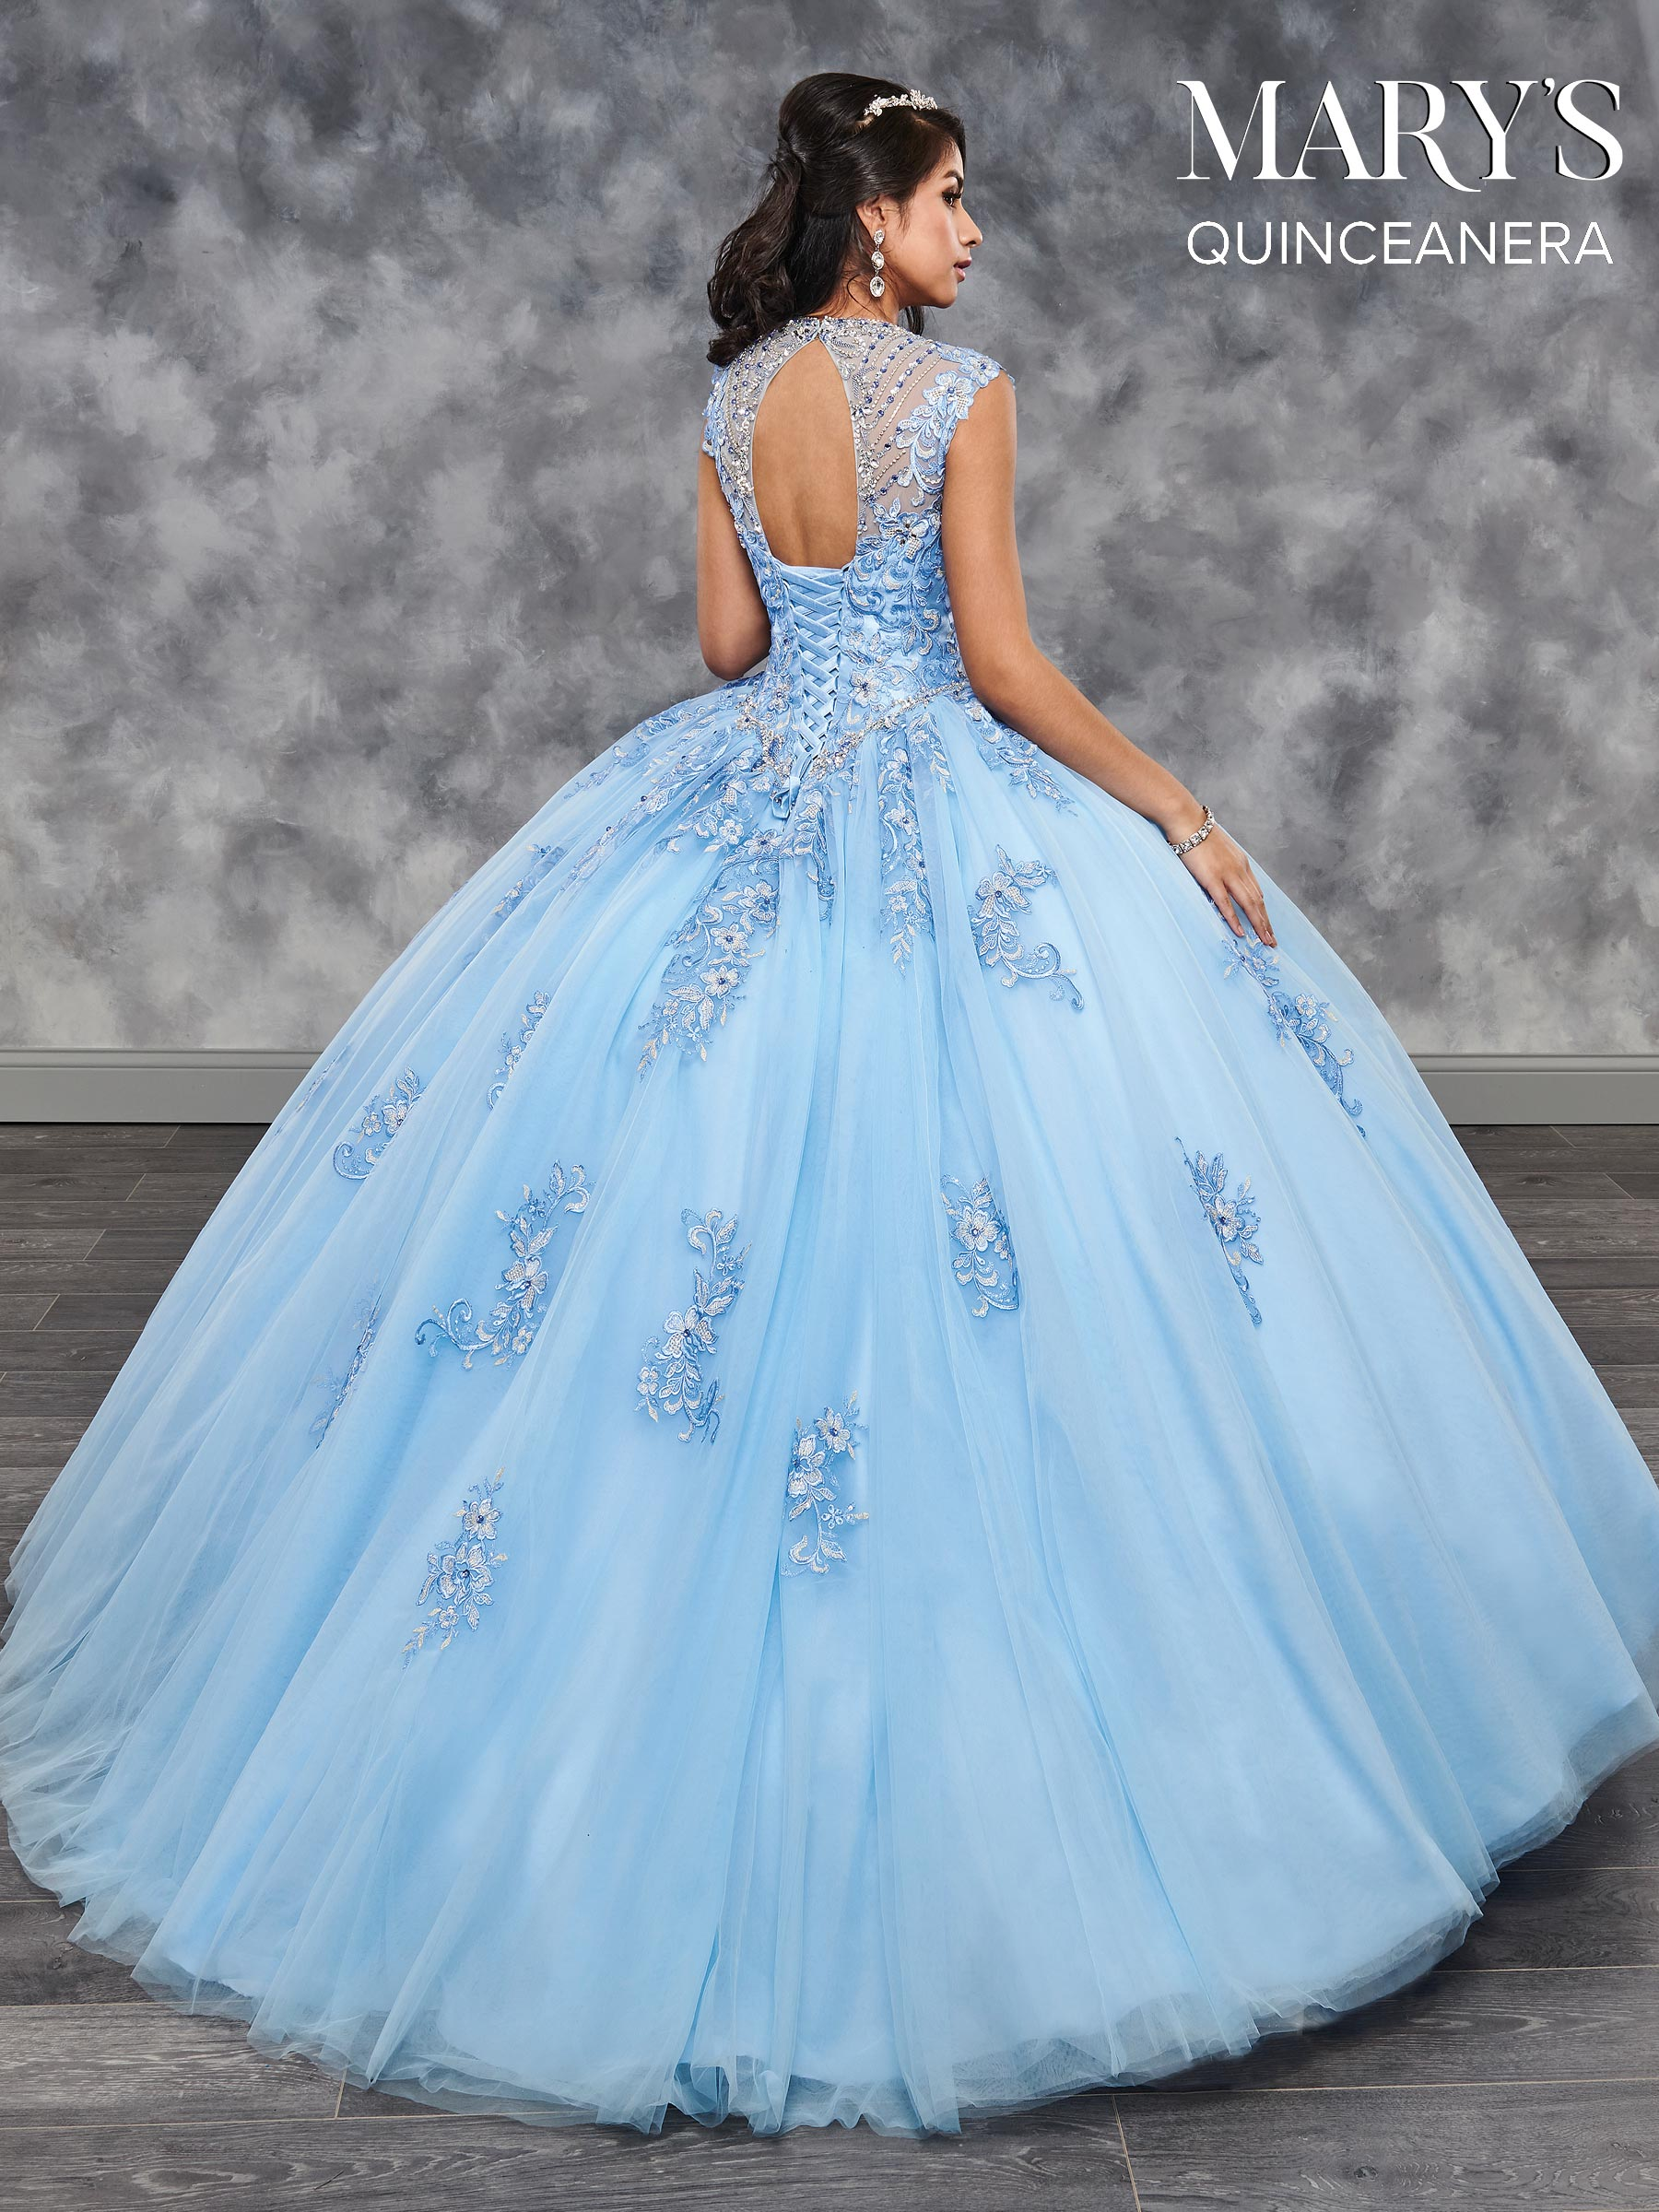 Marys Quinceanera Dresses | Mary's Quinceanera | Style - MQ2029